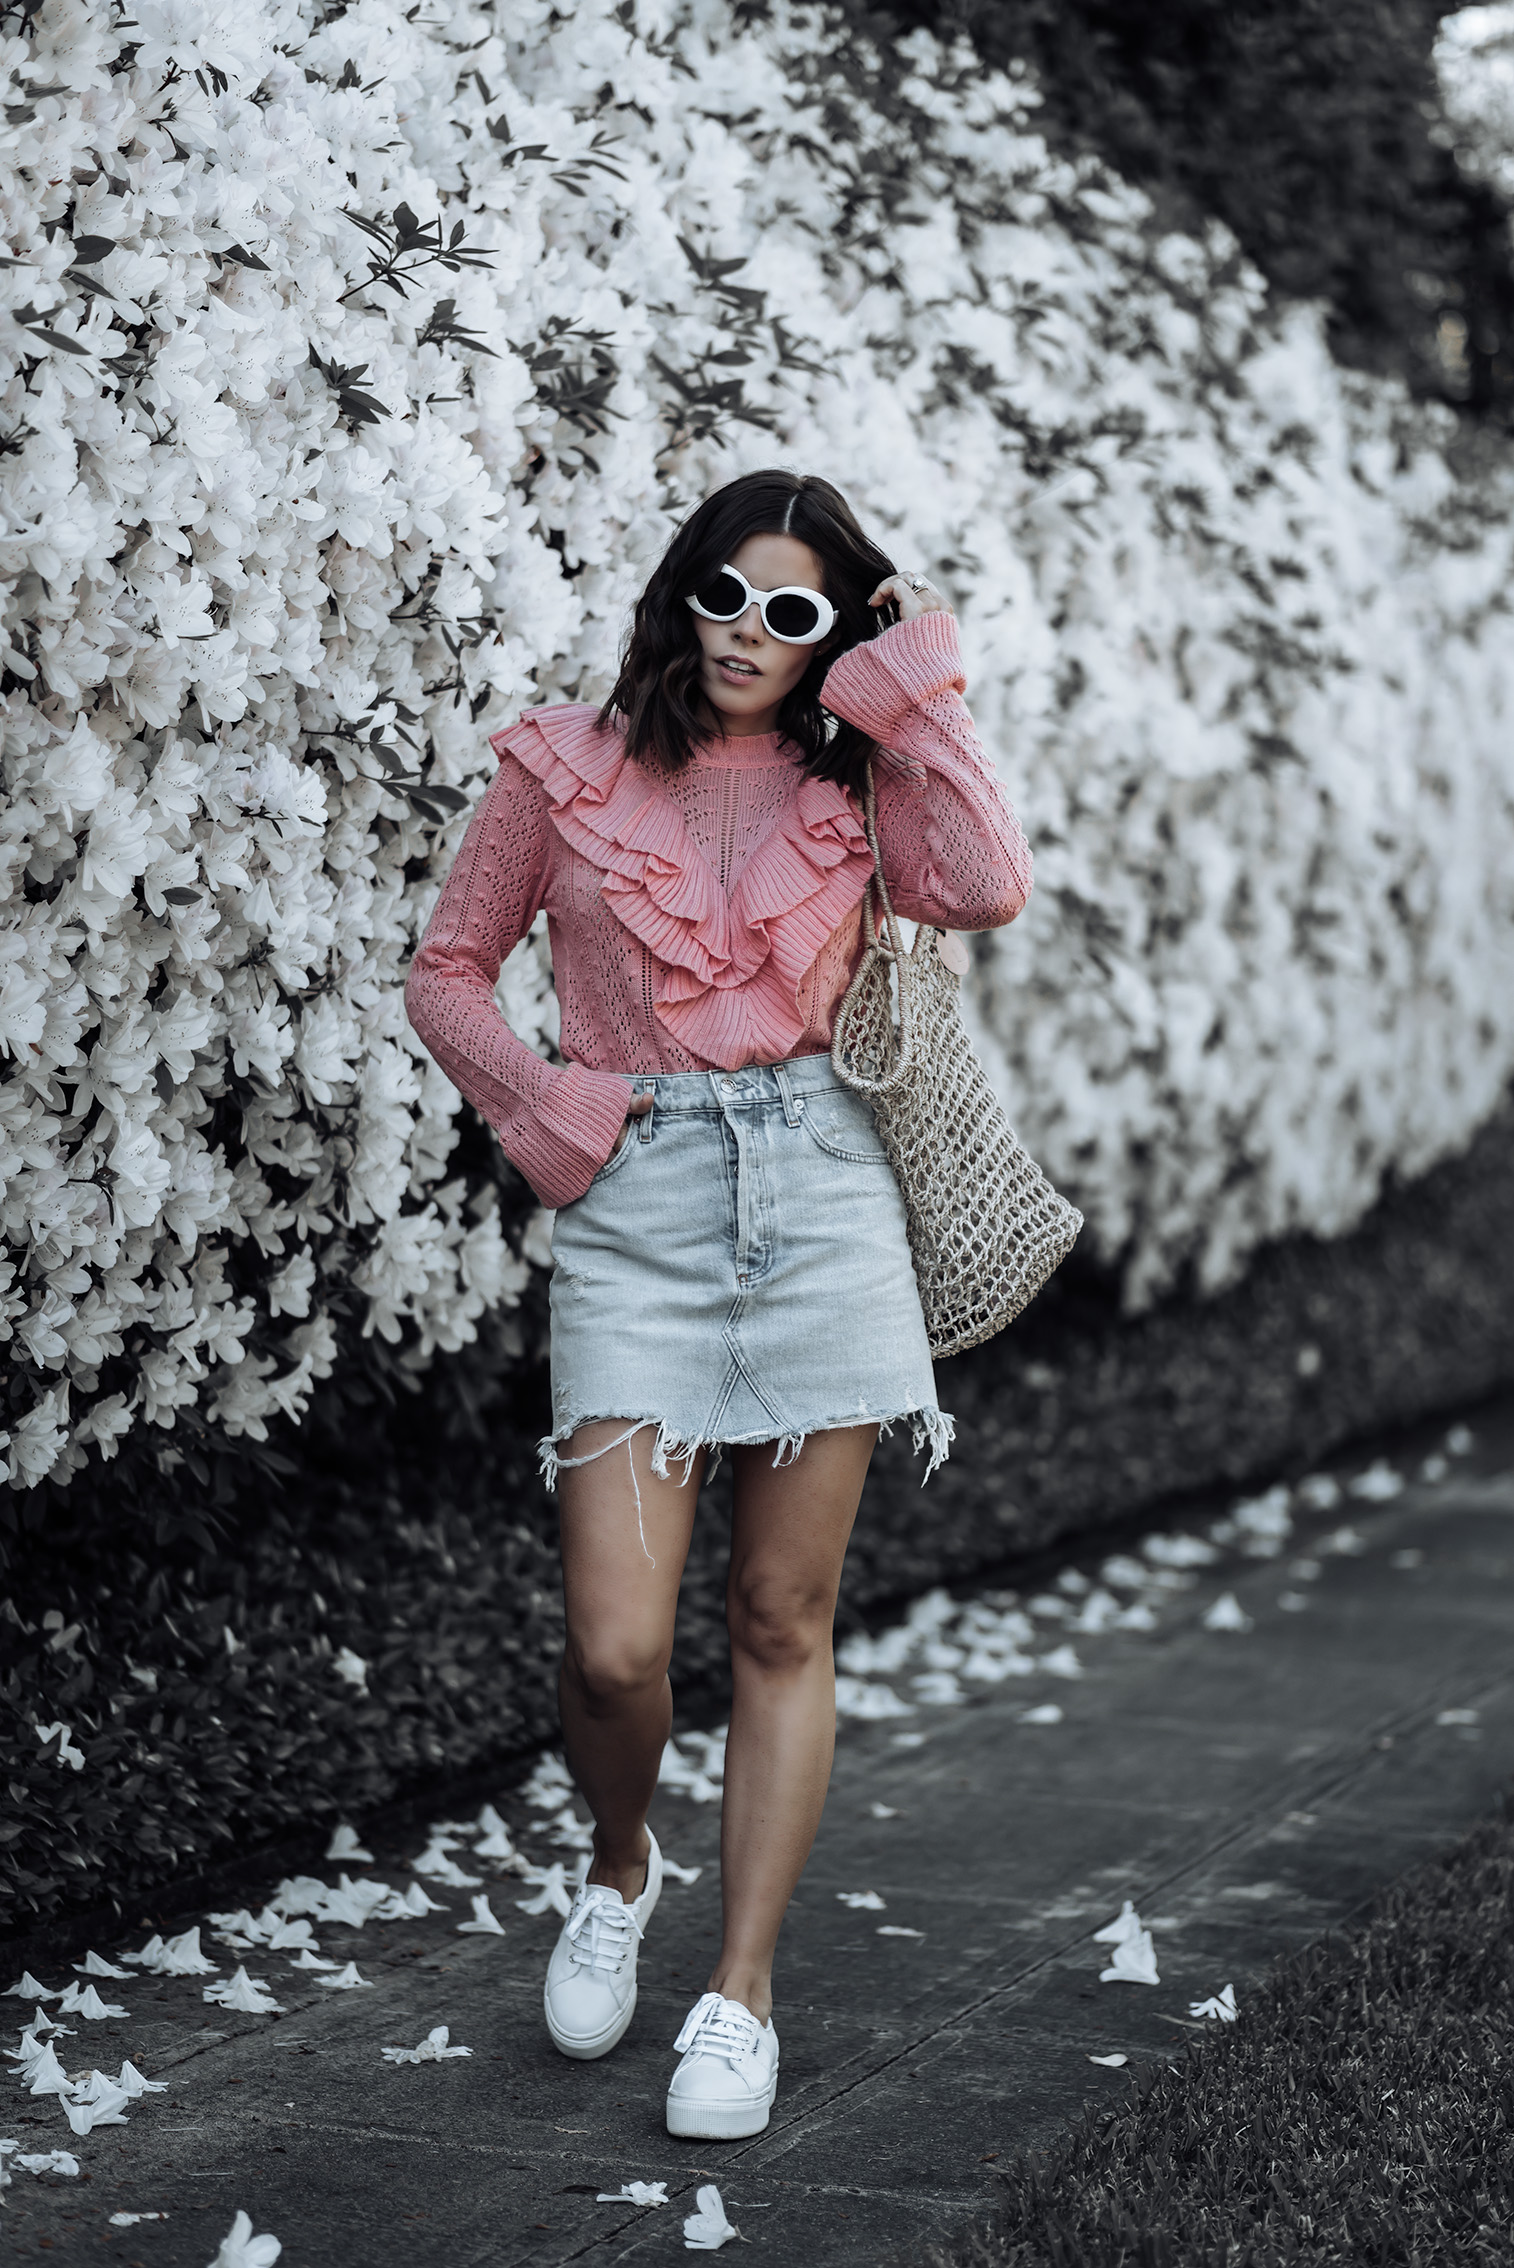 Manny Tularosa Sweater | Agolde High Waisted Skirt | Marina Basket Tote | {C/O} White Oval Shaped Sunnies | Superga Platform Sneakers | #streetstyle #denimskirtoutfits #Tularosa #platformsneakers #liketkit